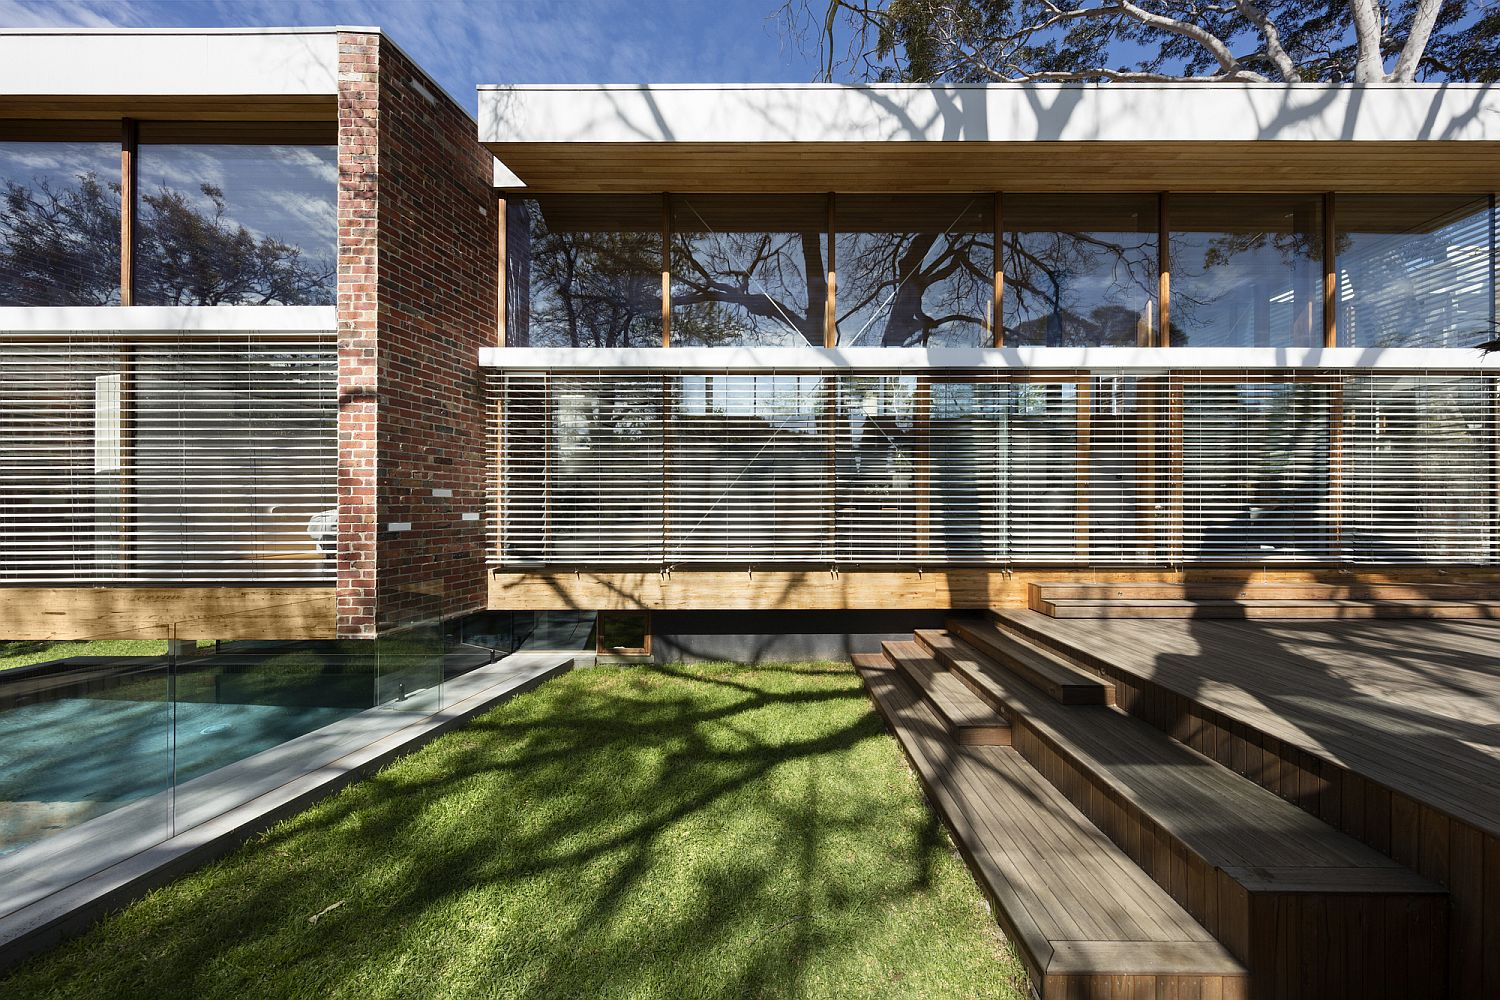 Brick and wood exterior of the Aussie home